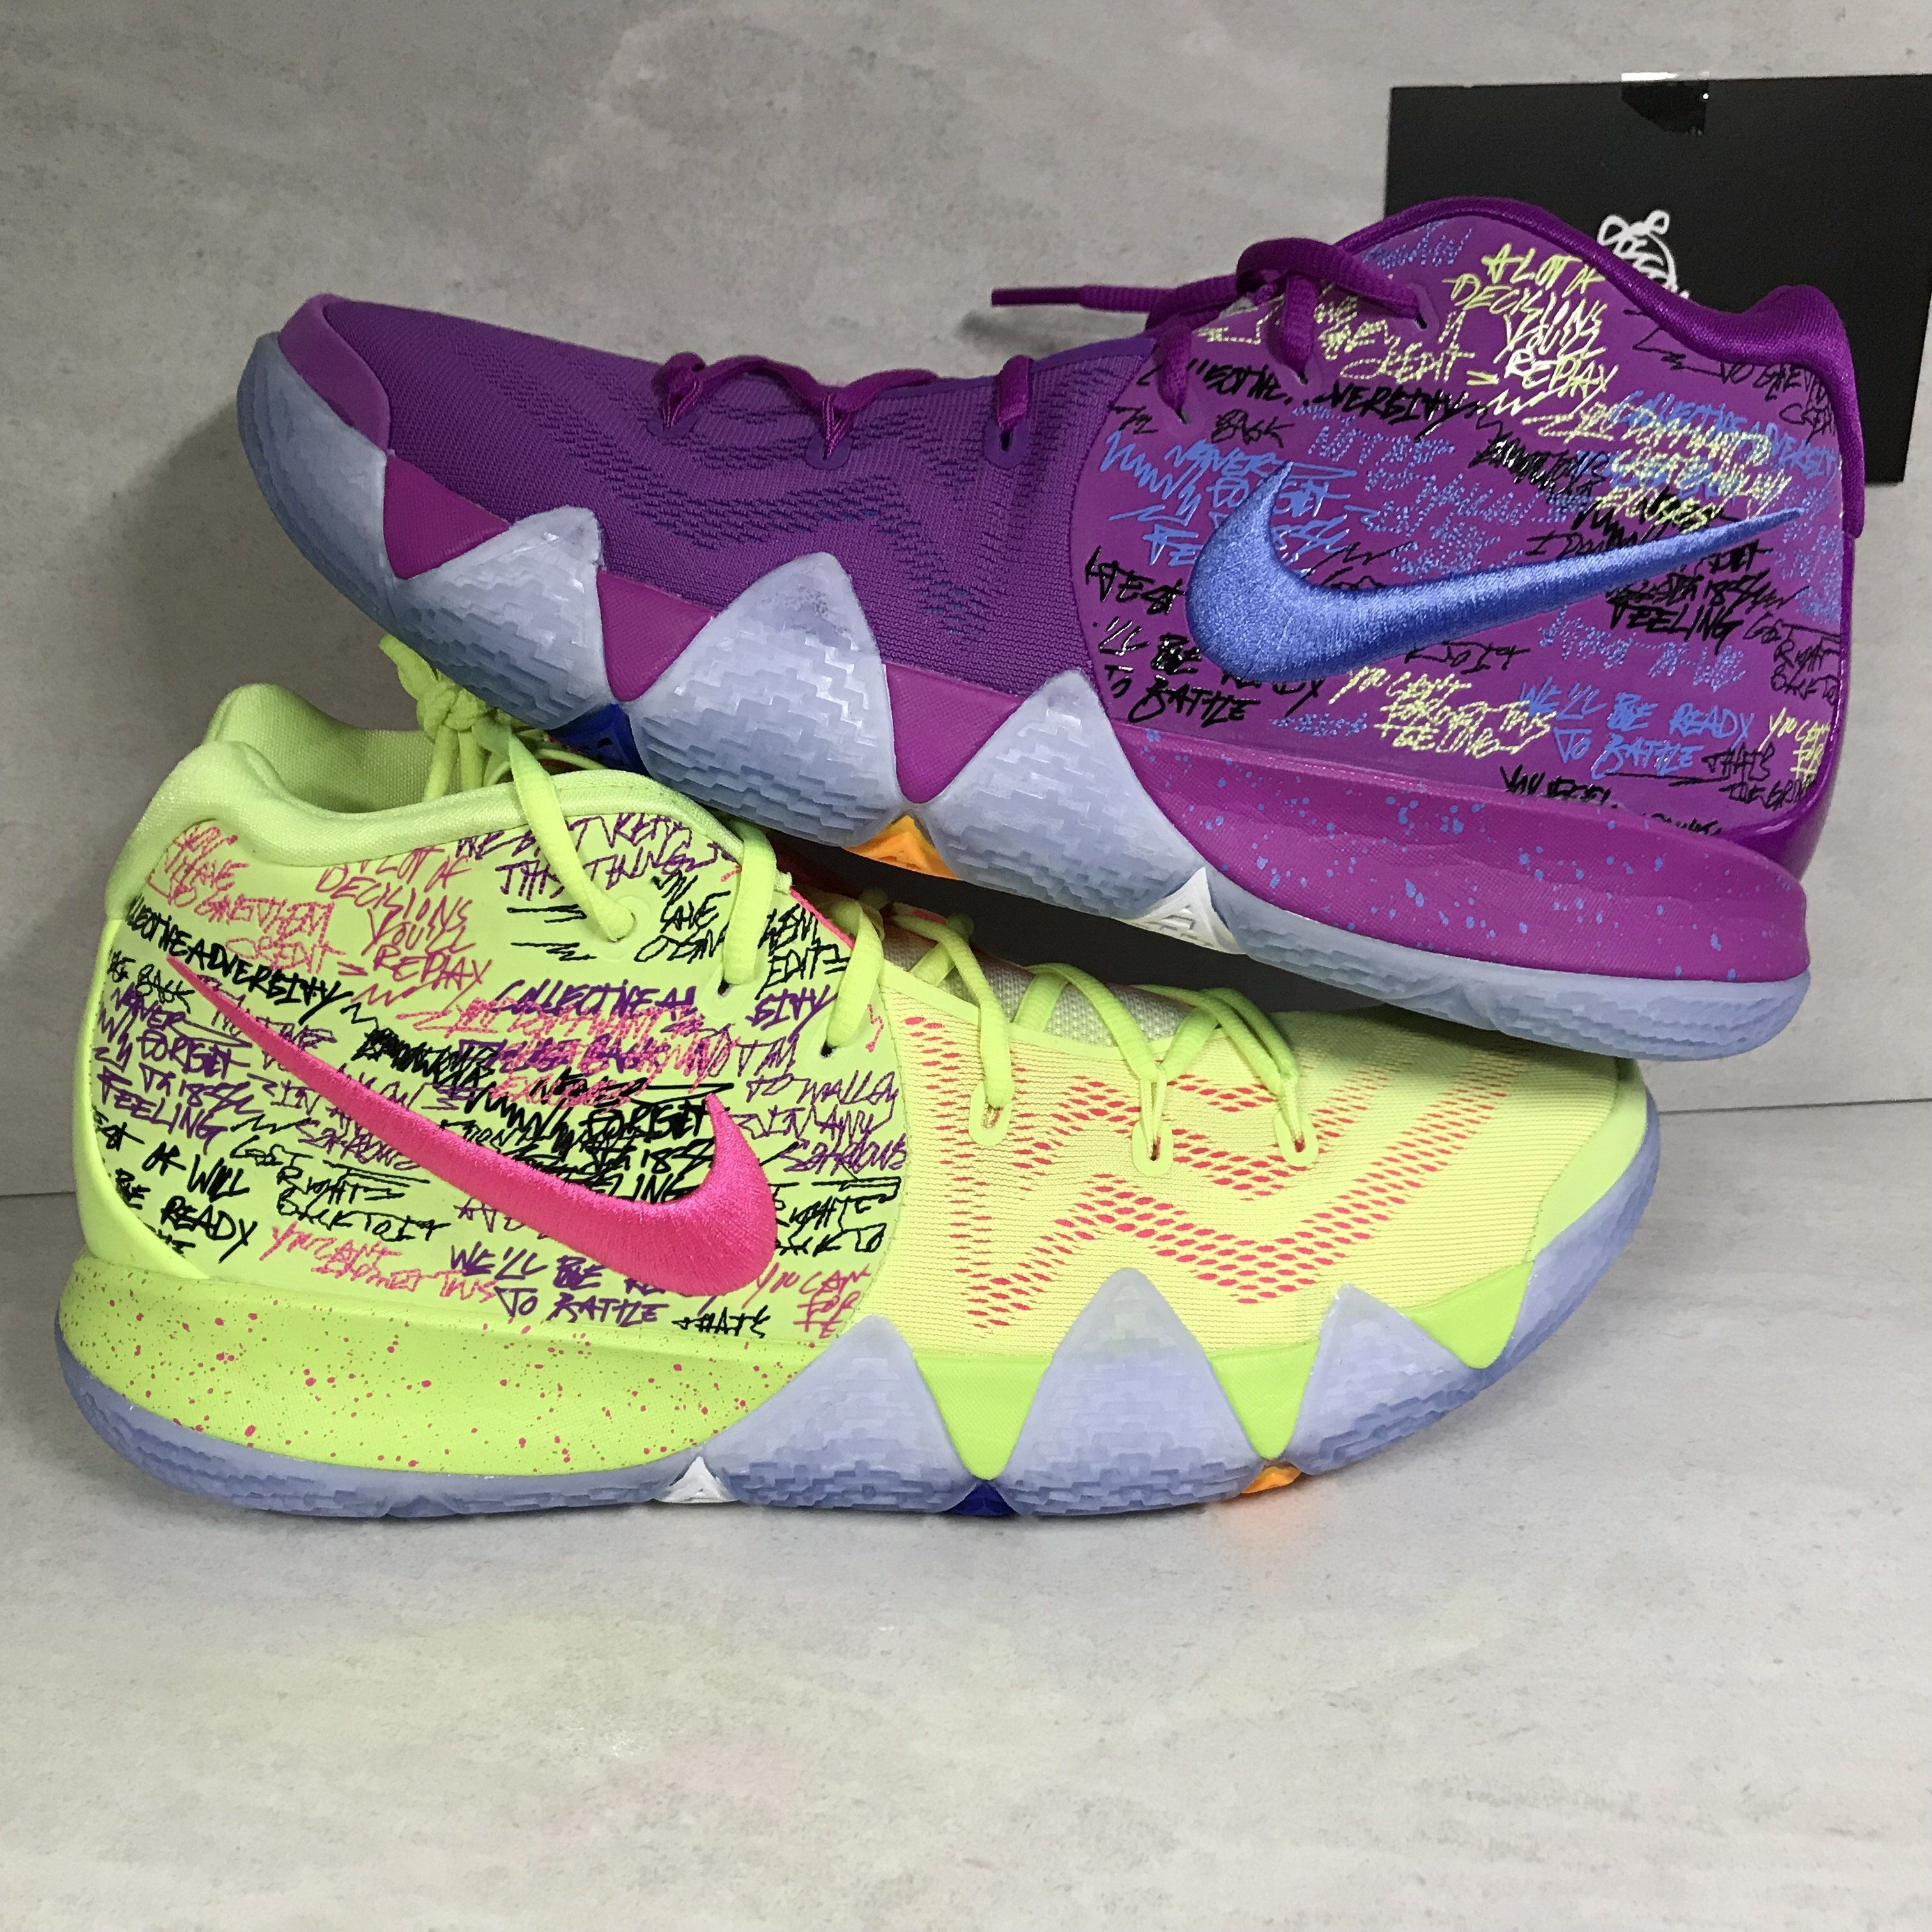 118746a85d10 DS Nike Kyrie 4 Confetti Size 13 Size 14